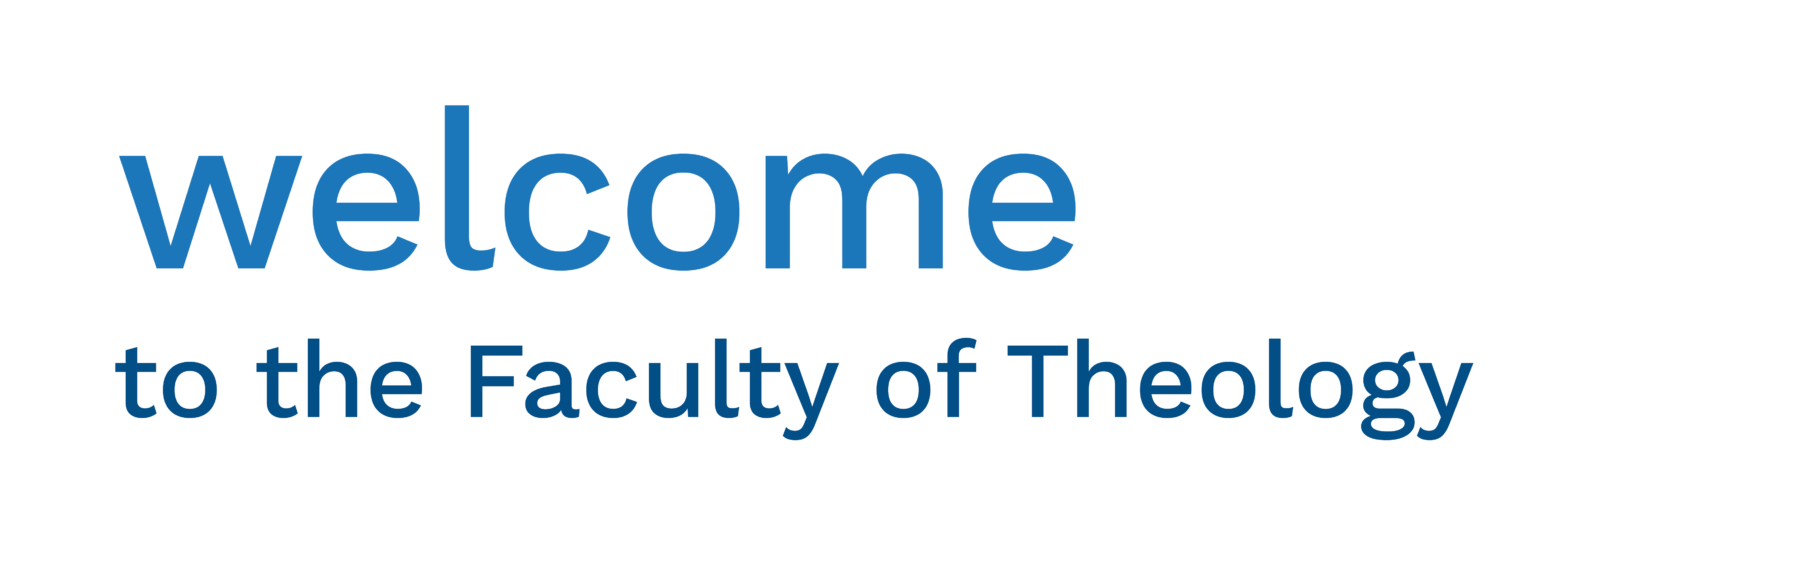 Welcome to the Faculty of Theology